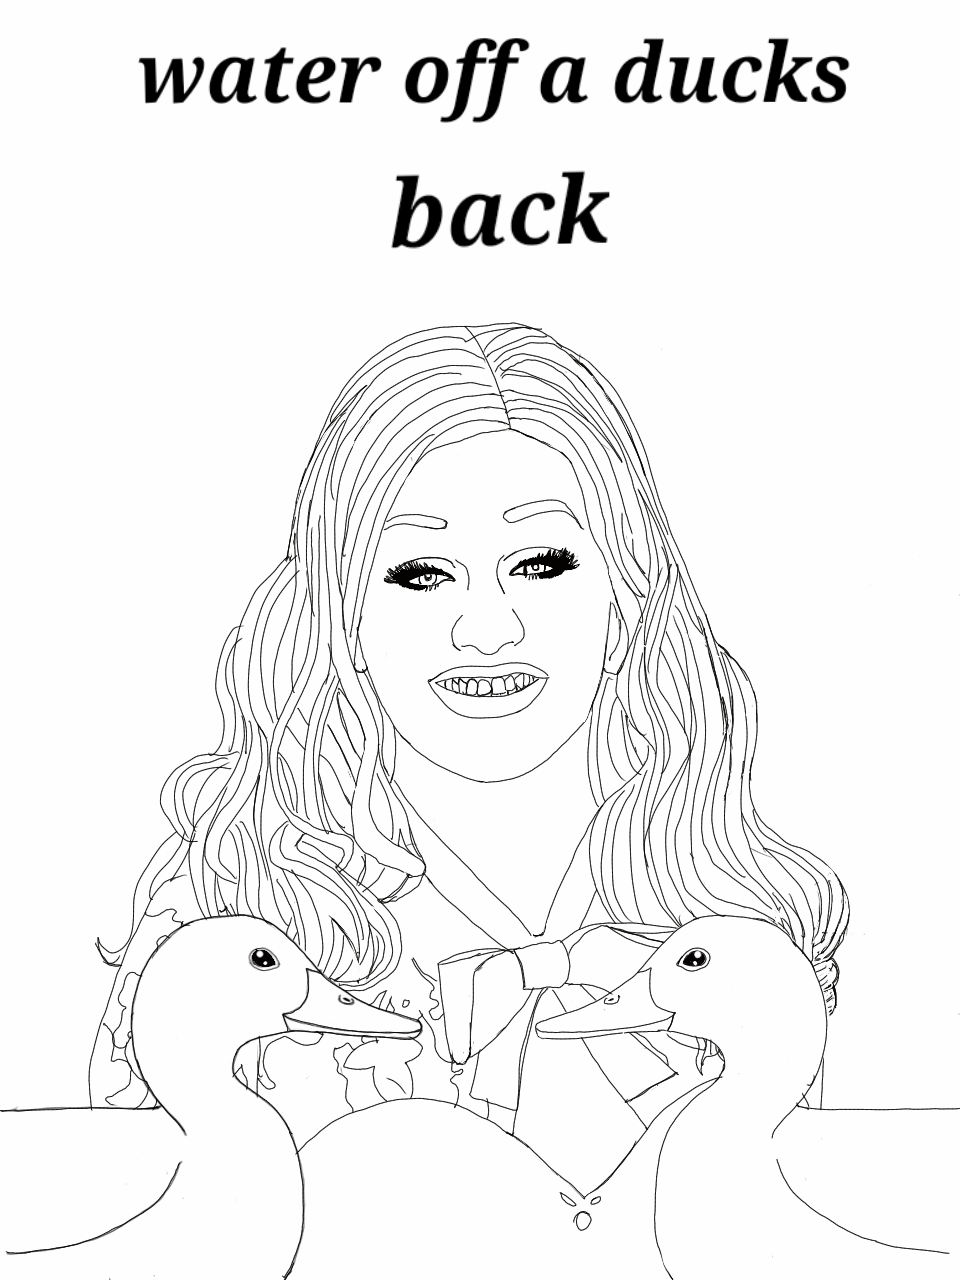 21 Rupauls drag race coloring pages ideas  coloring pages